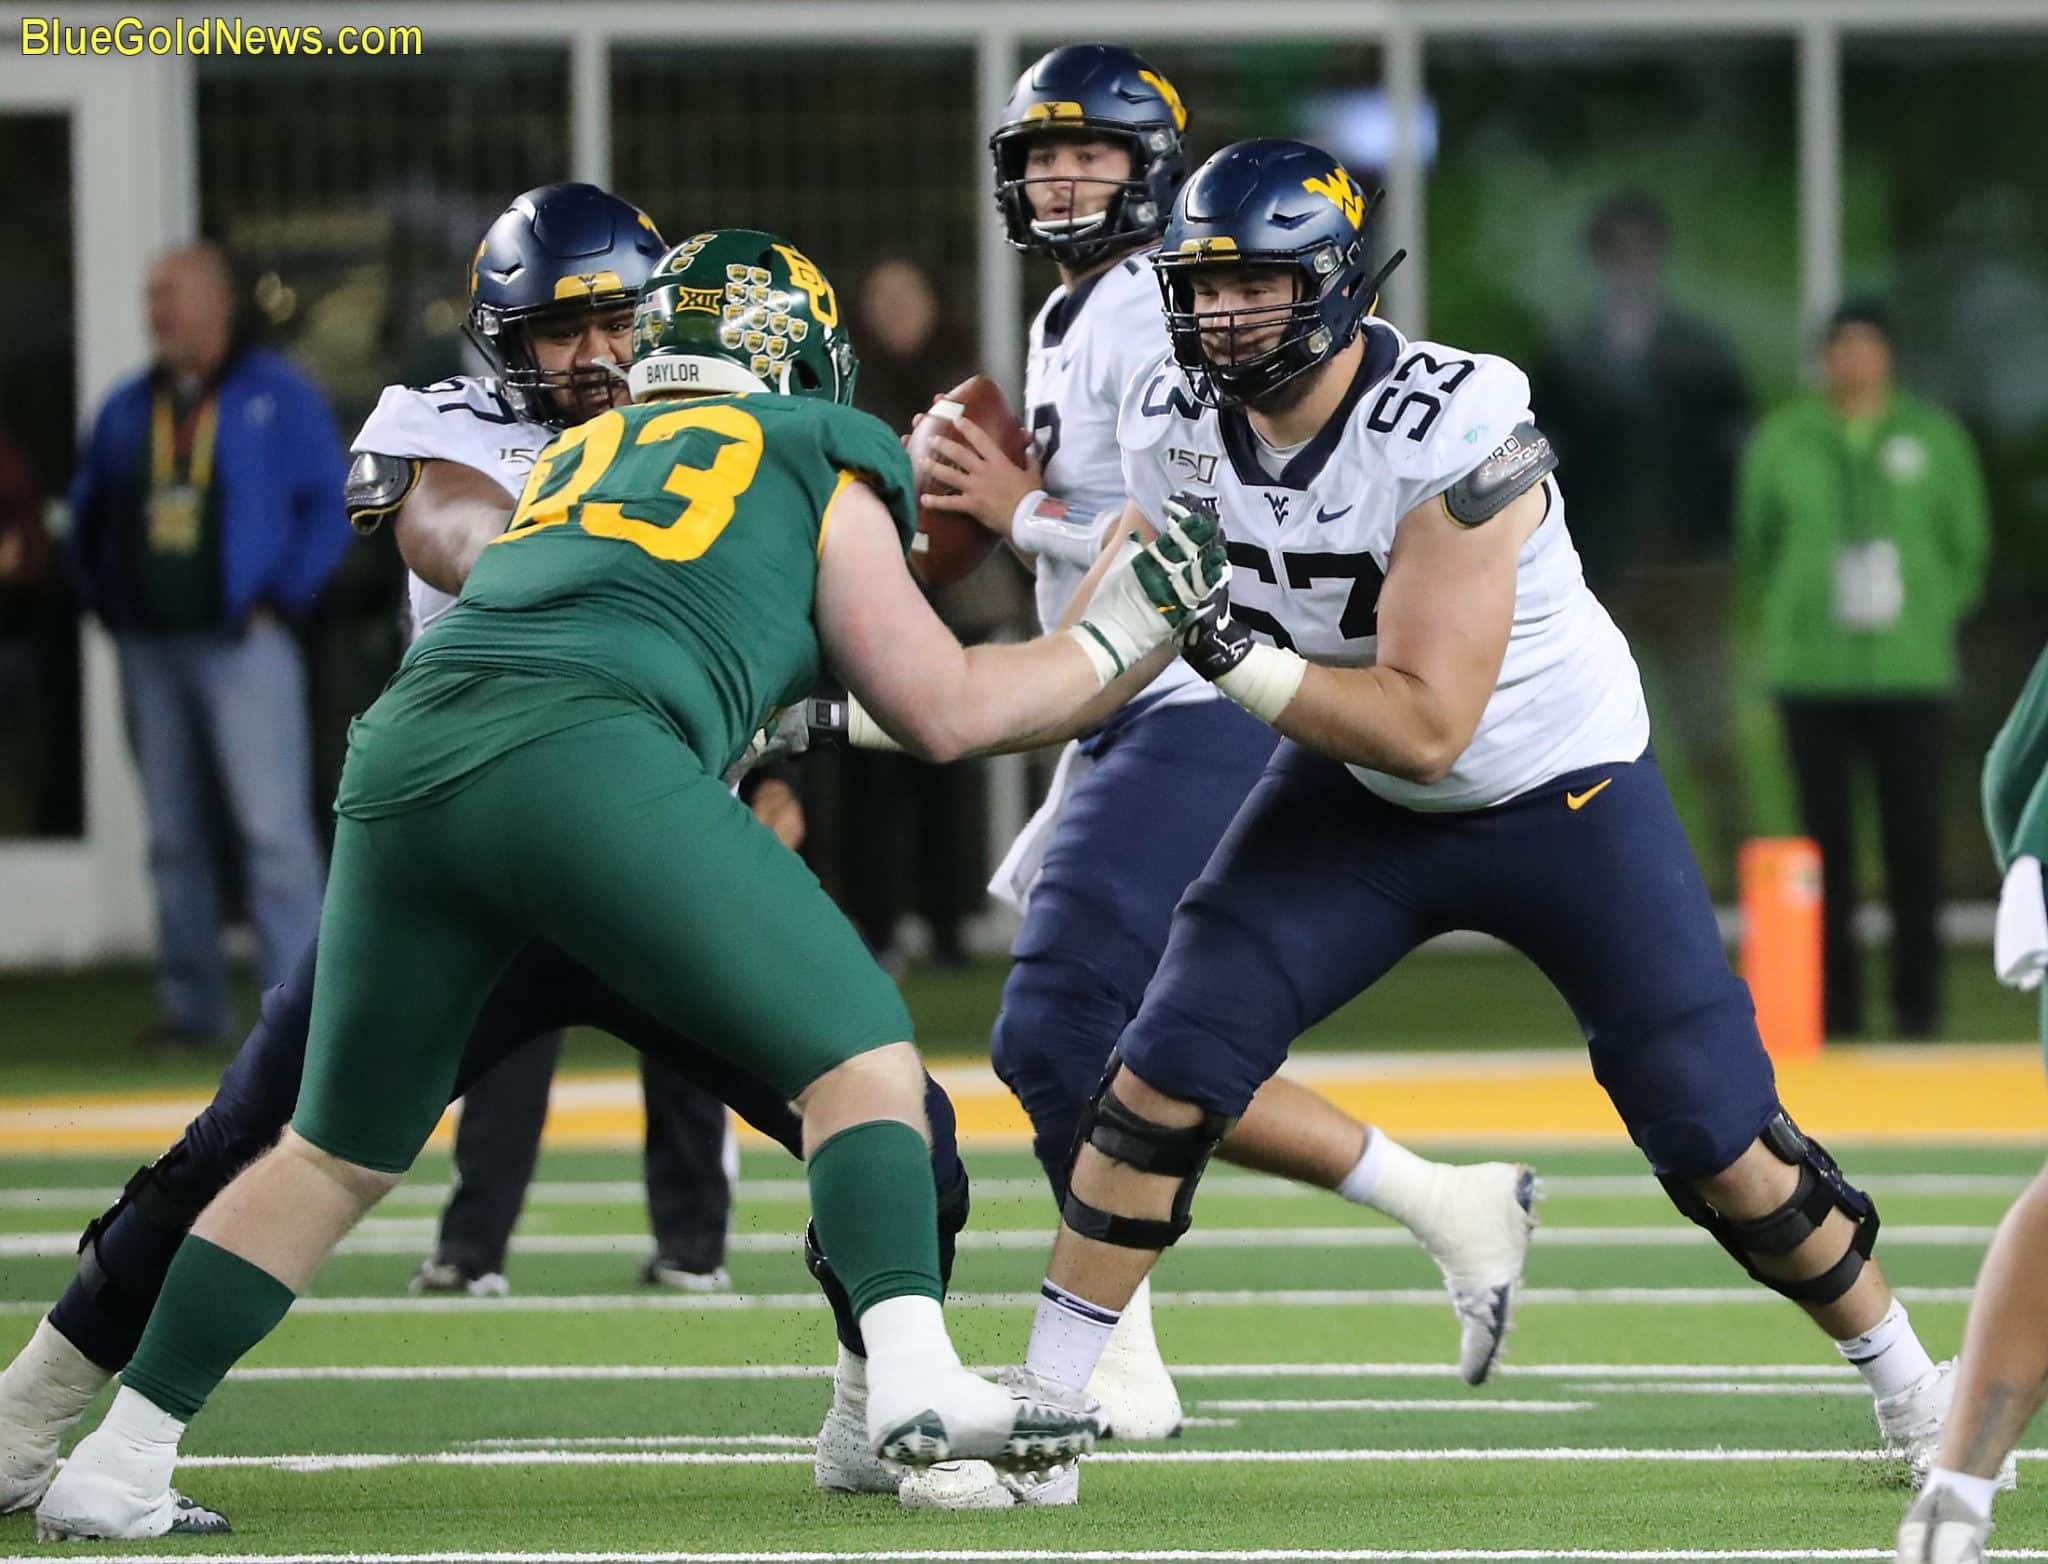 West Virginia offensive linemen Colton McKivitz (53) and Mike Brown (left) pass protect for quarterback Austin Kendall